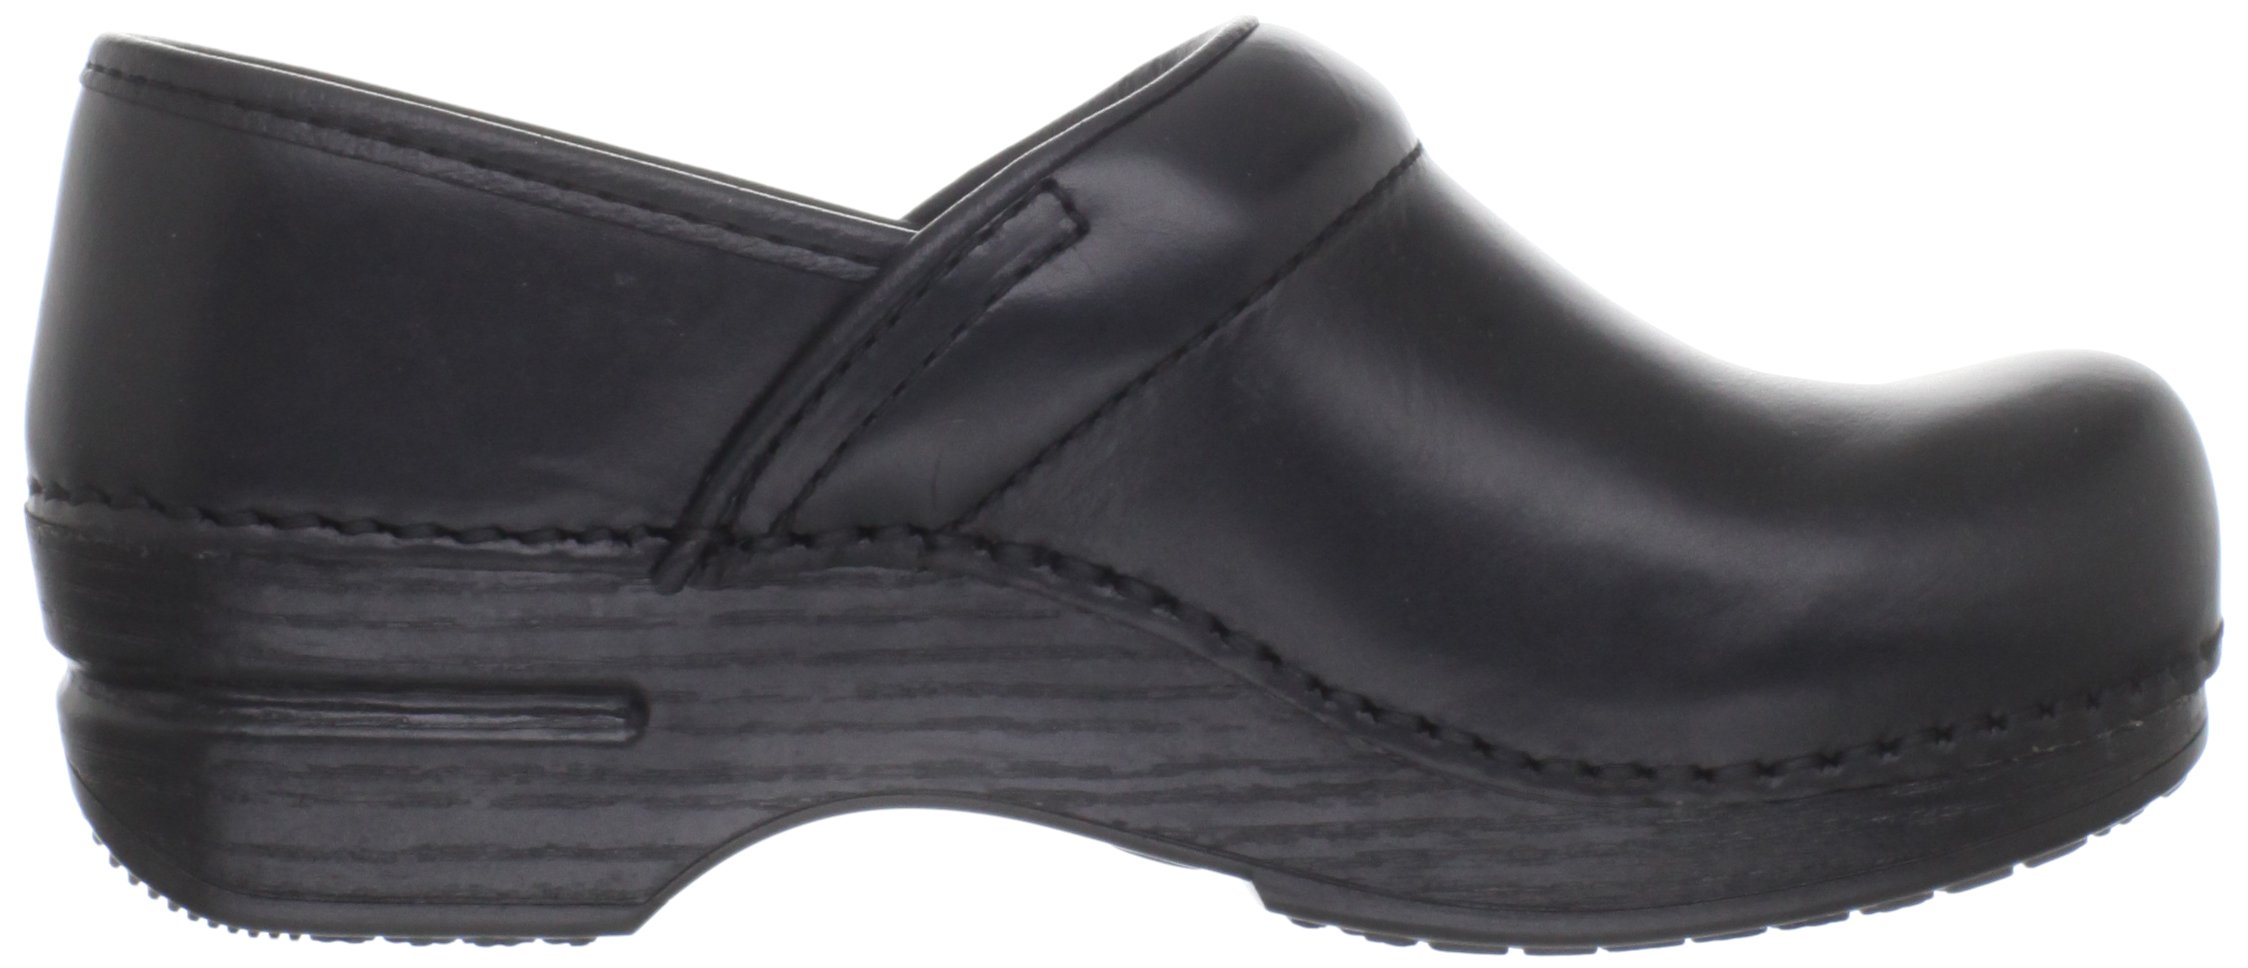 Dansko Women's Pro XP Clog,Ebony,35 EU/4.5-5 M US by Dansko (Image #6)